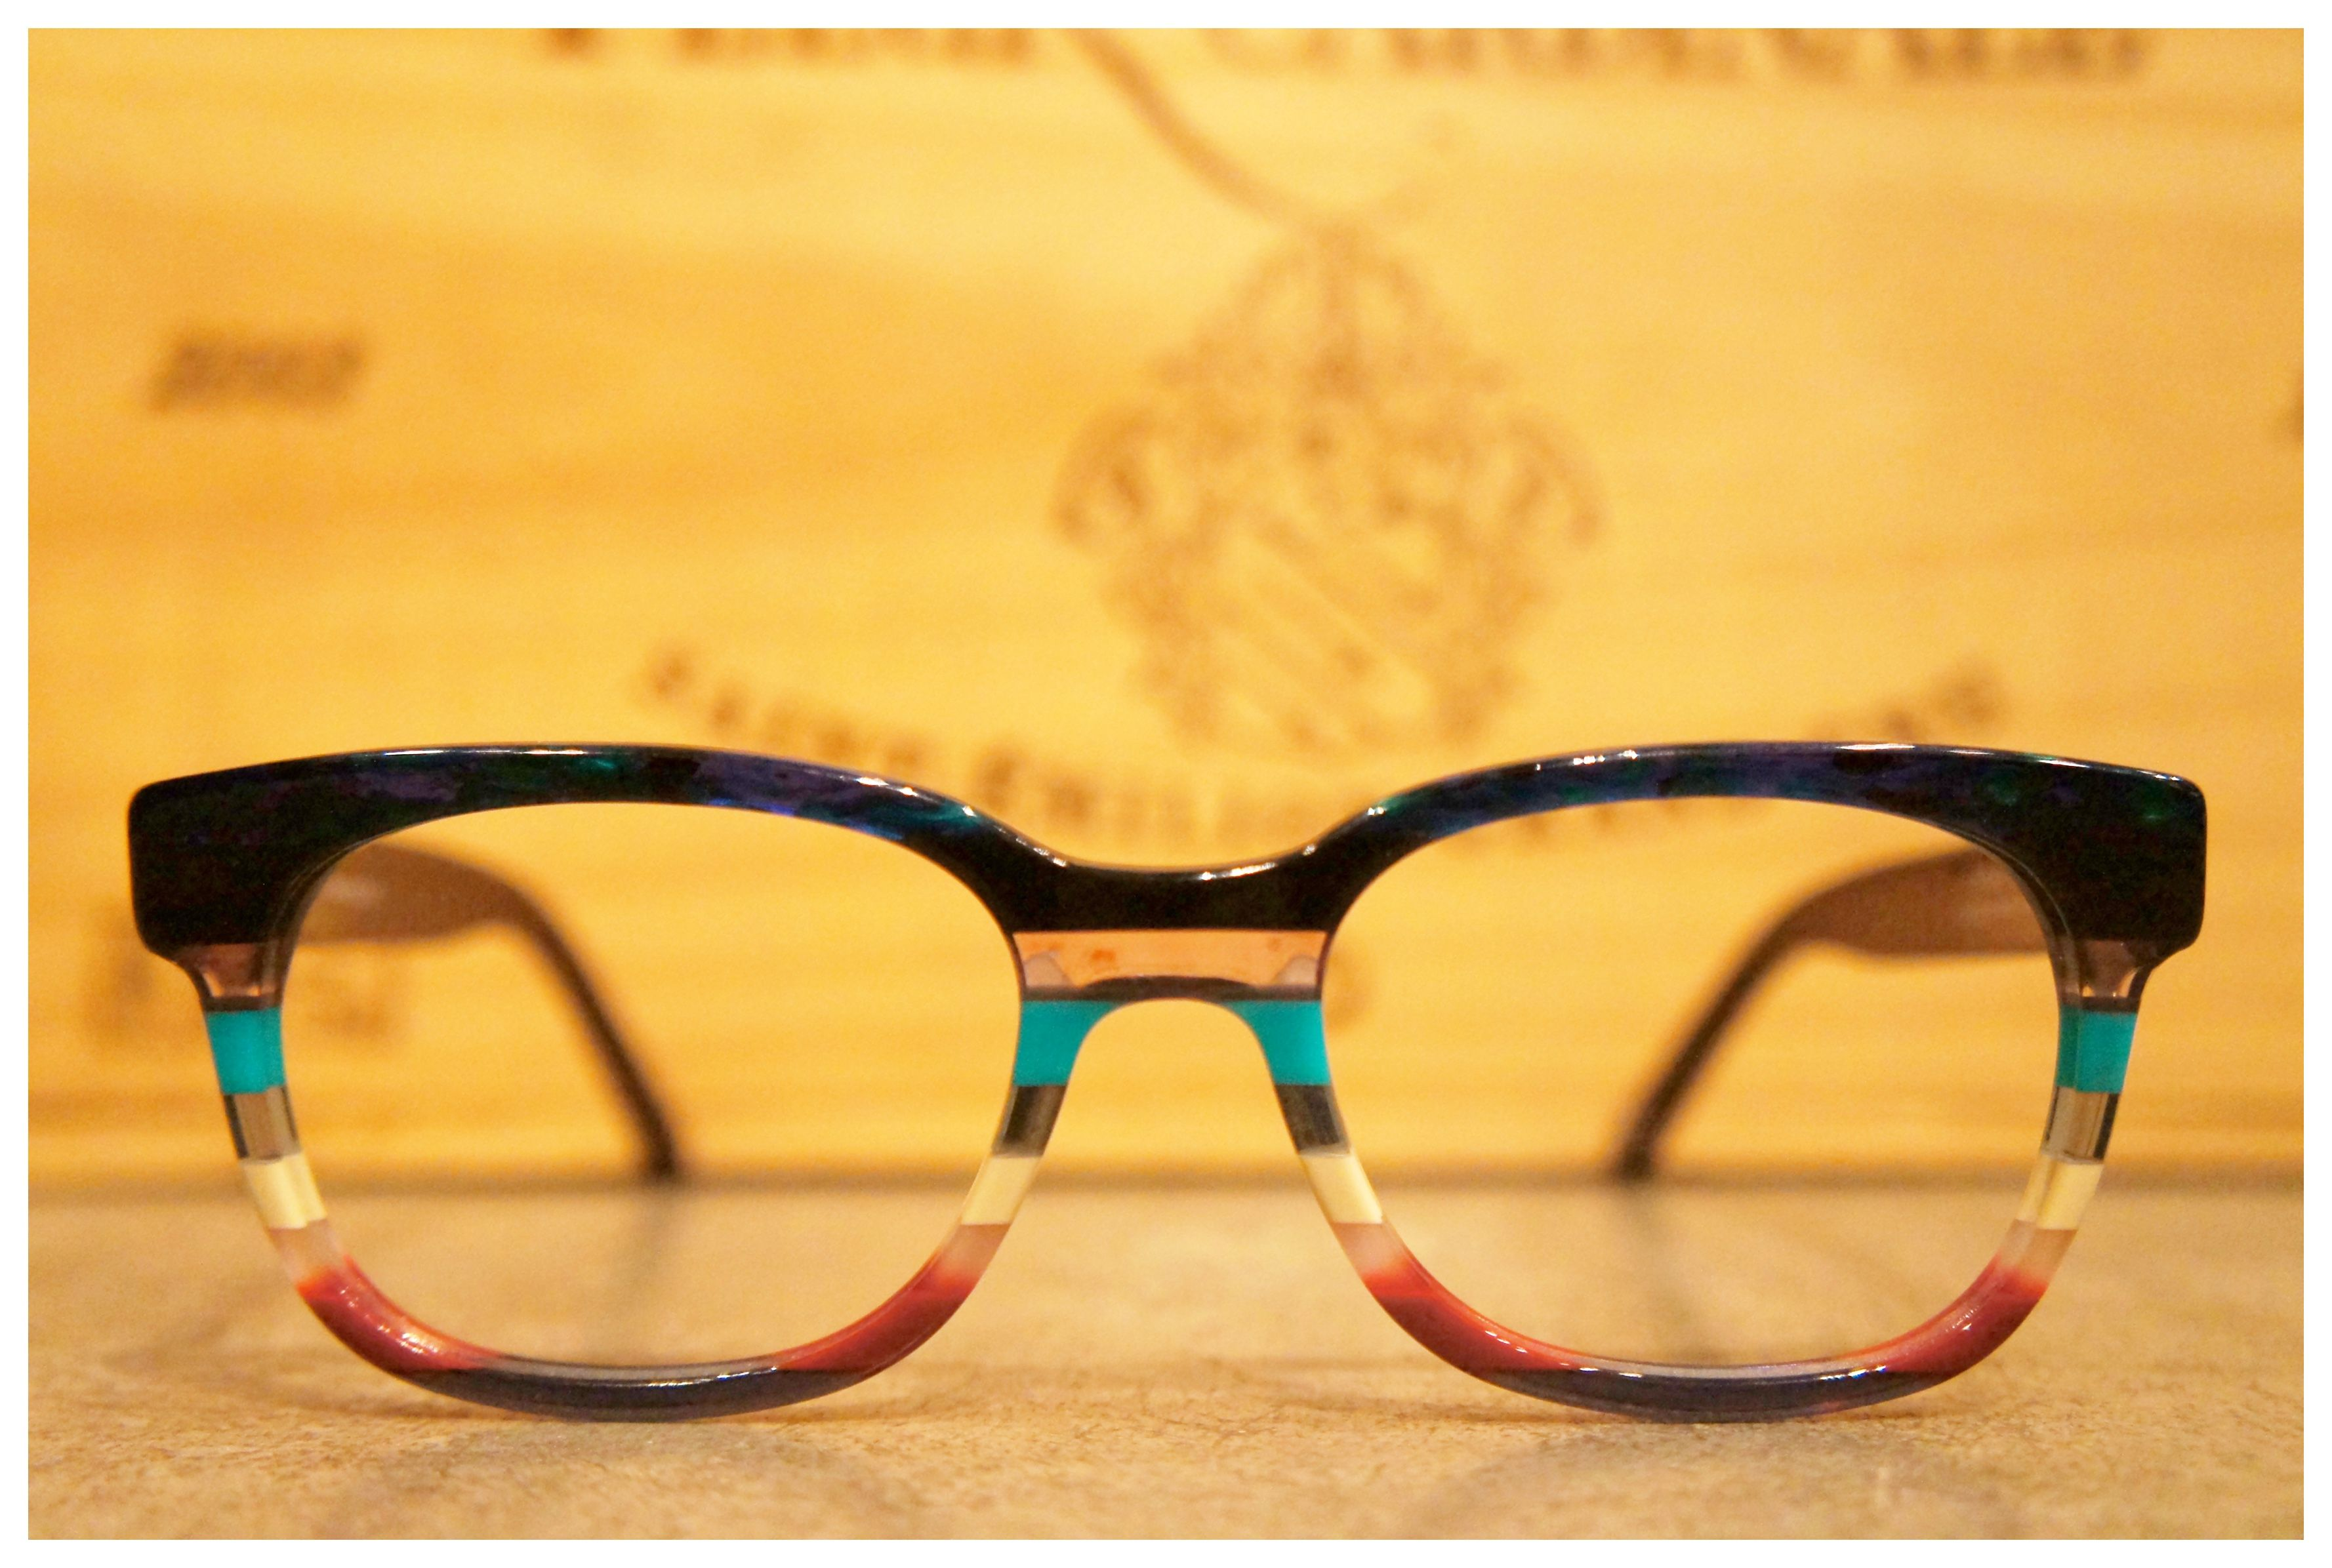 Why Fit In When You Were Born To Stand Out These Colourful Frames Are A Perfect Blend Of Funk Fashion With Ultra Limite Eyewear Colorful Frames Eyeglasses